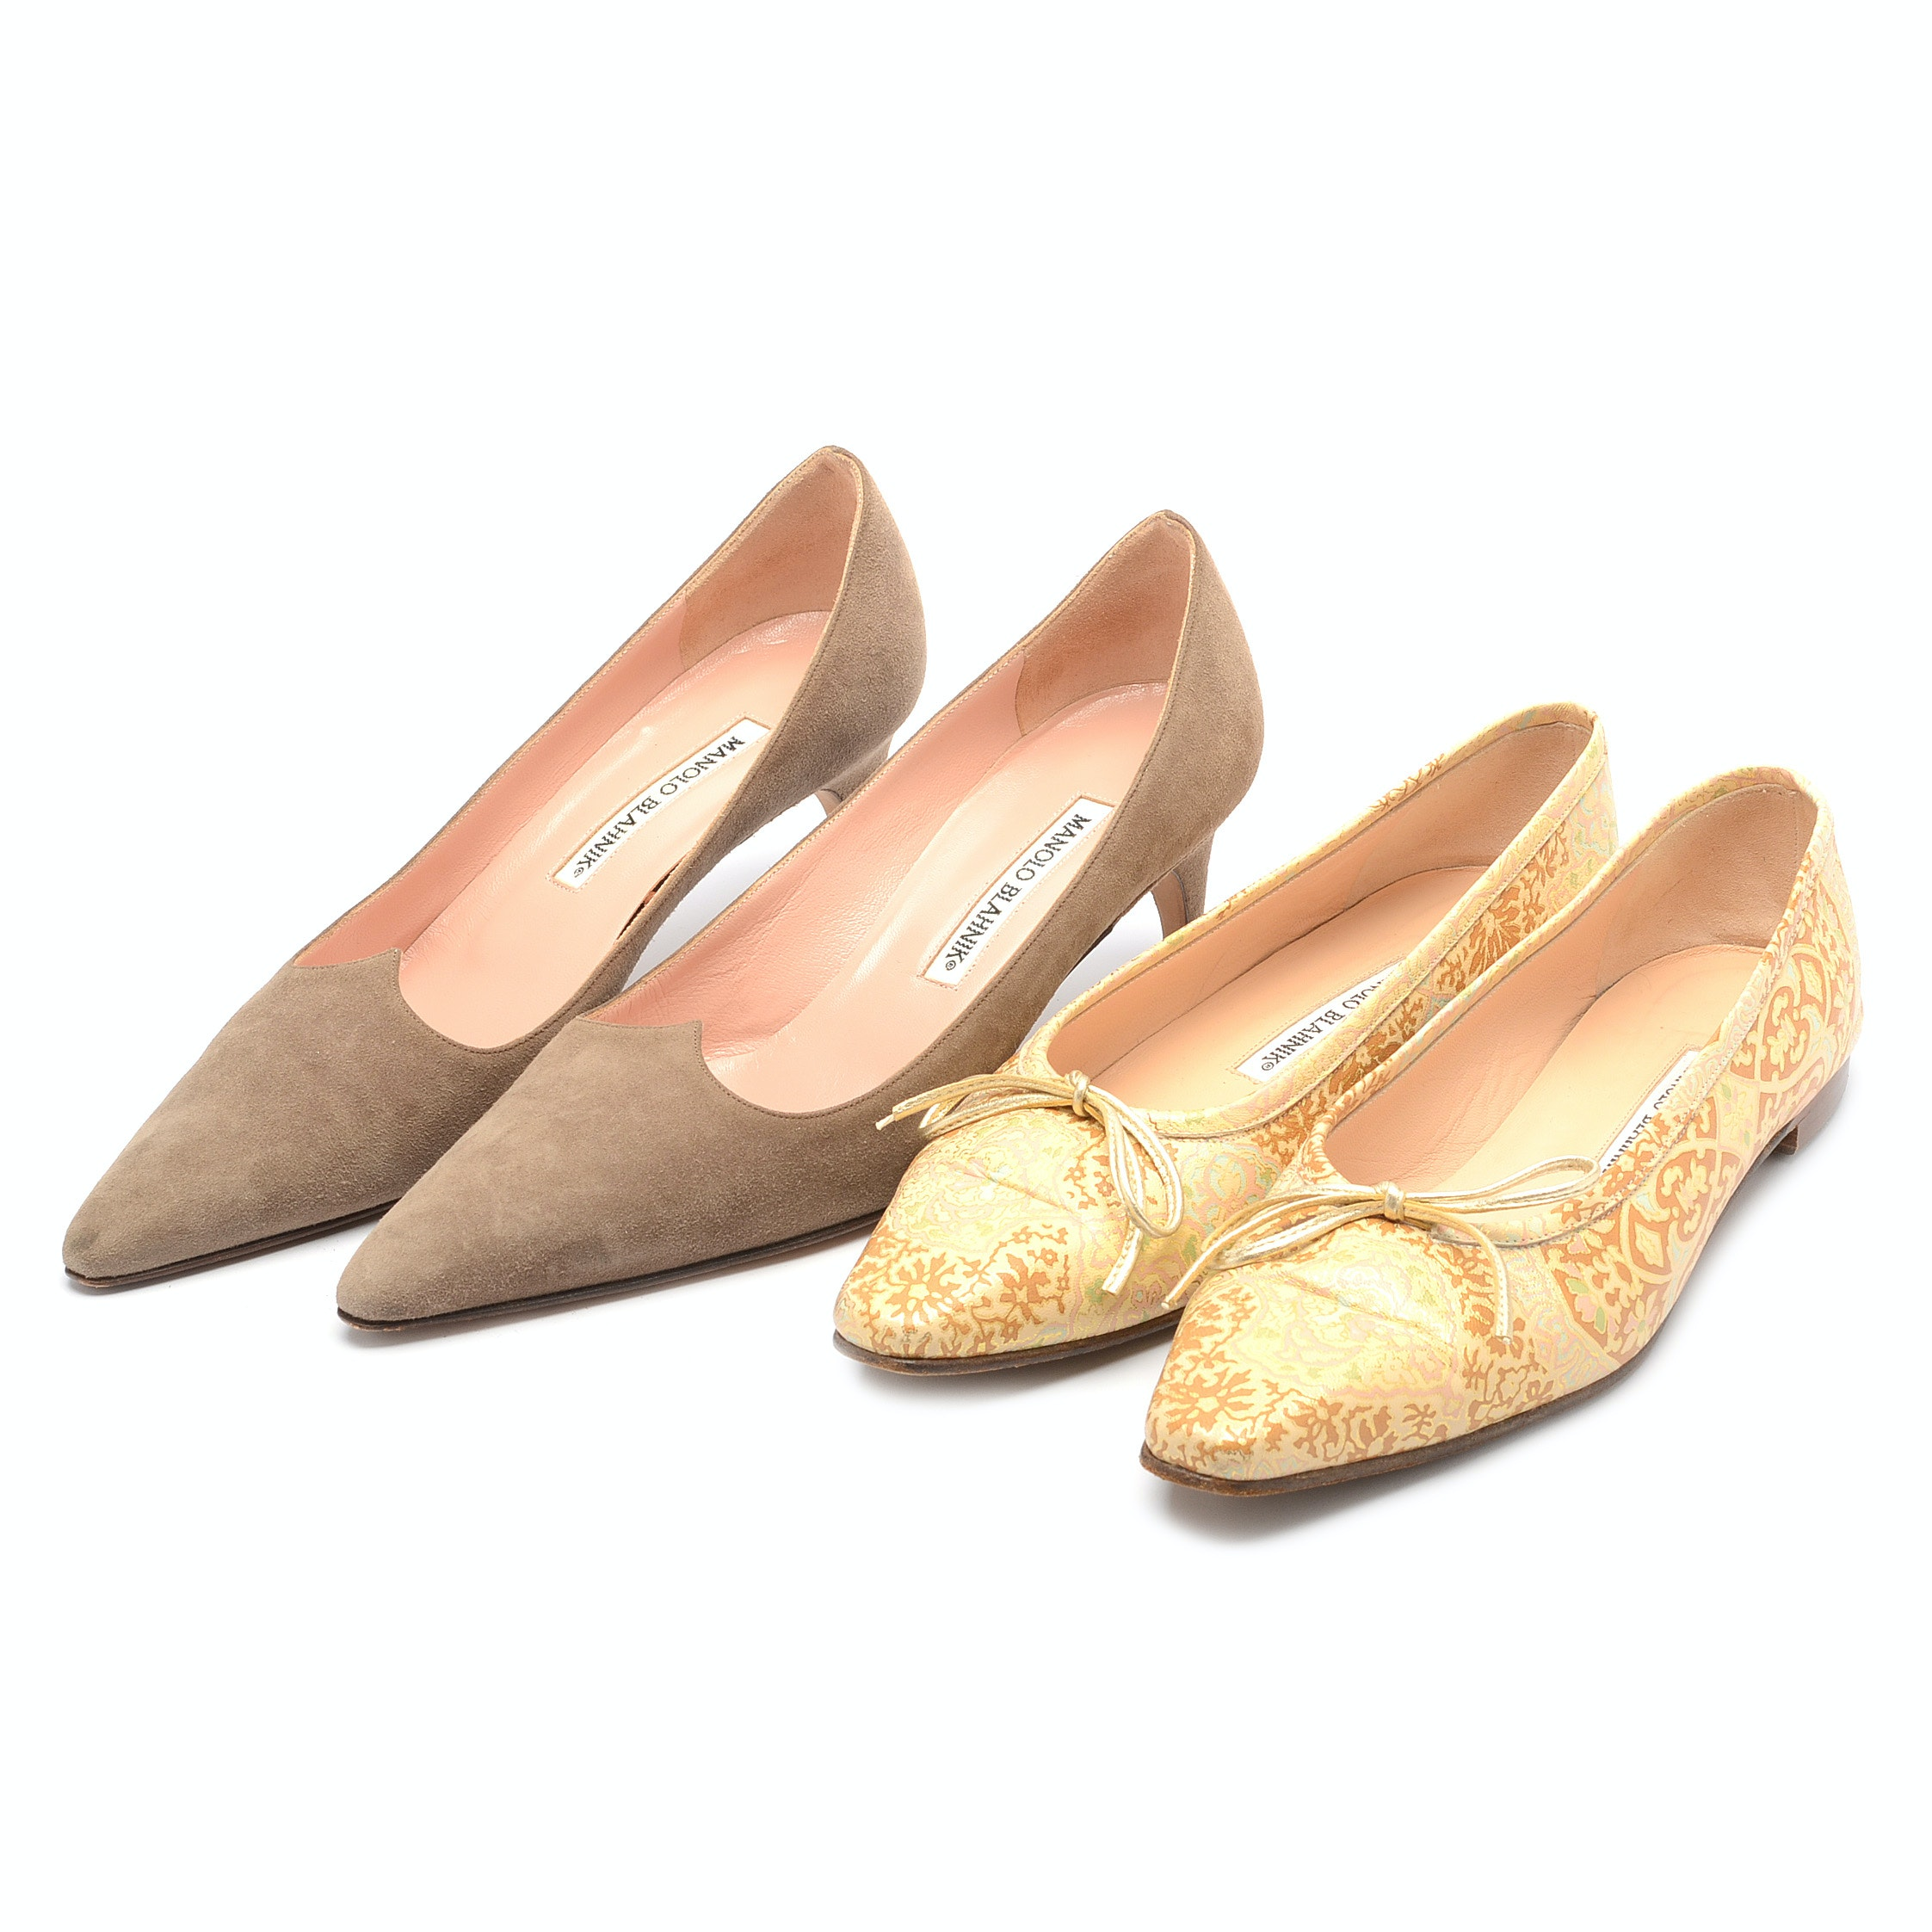 Manolo Blahnik Flats and Pumps